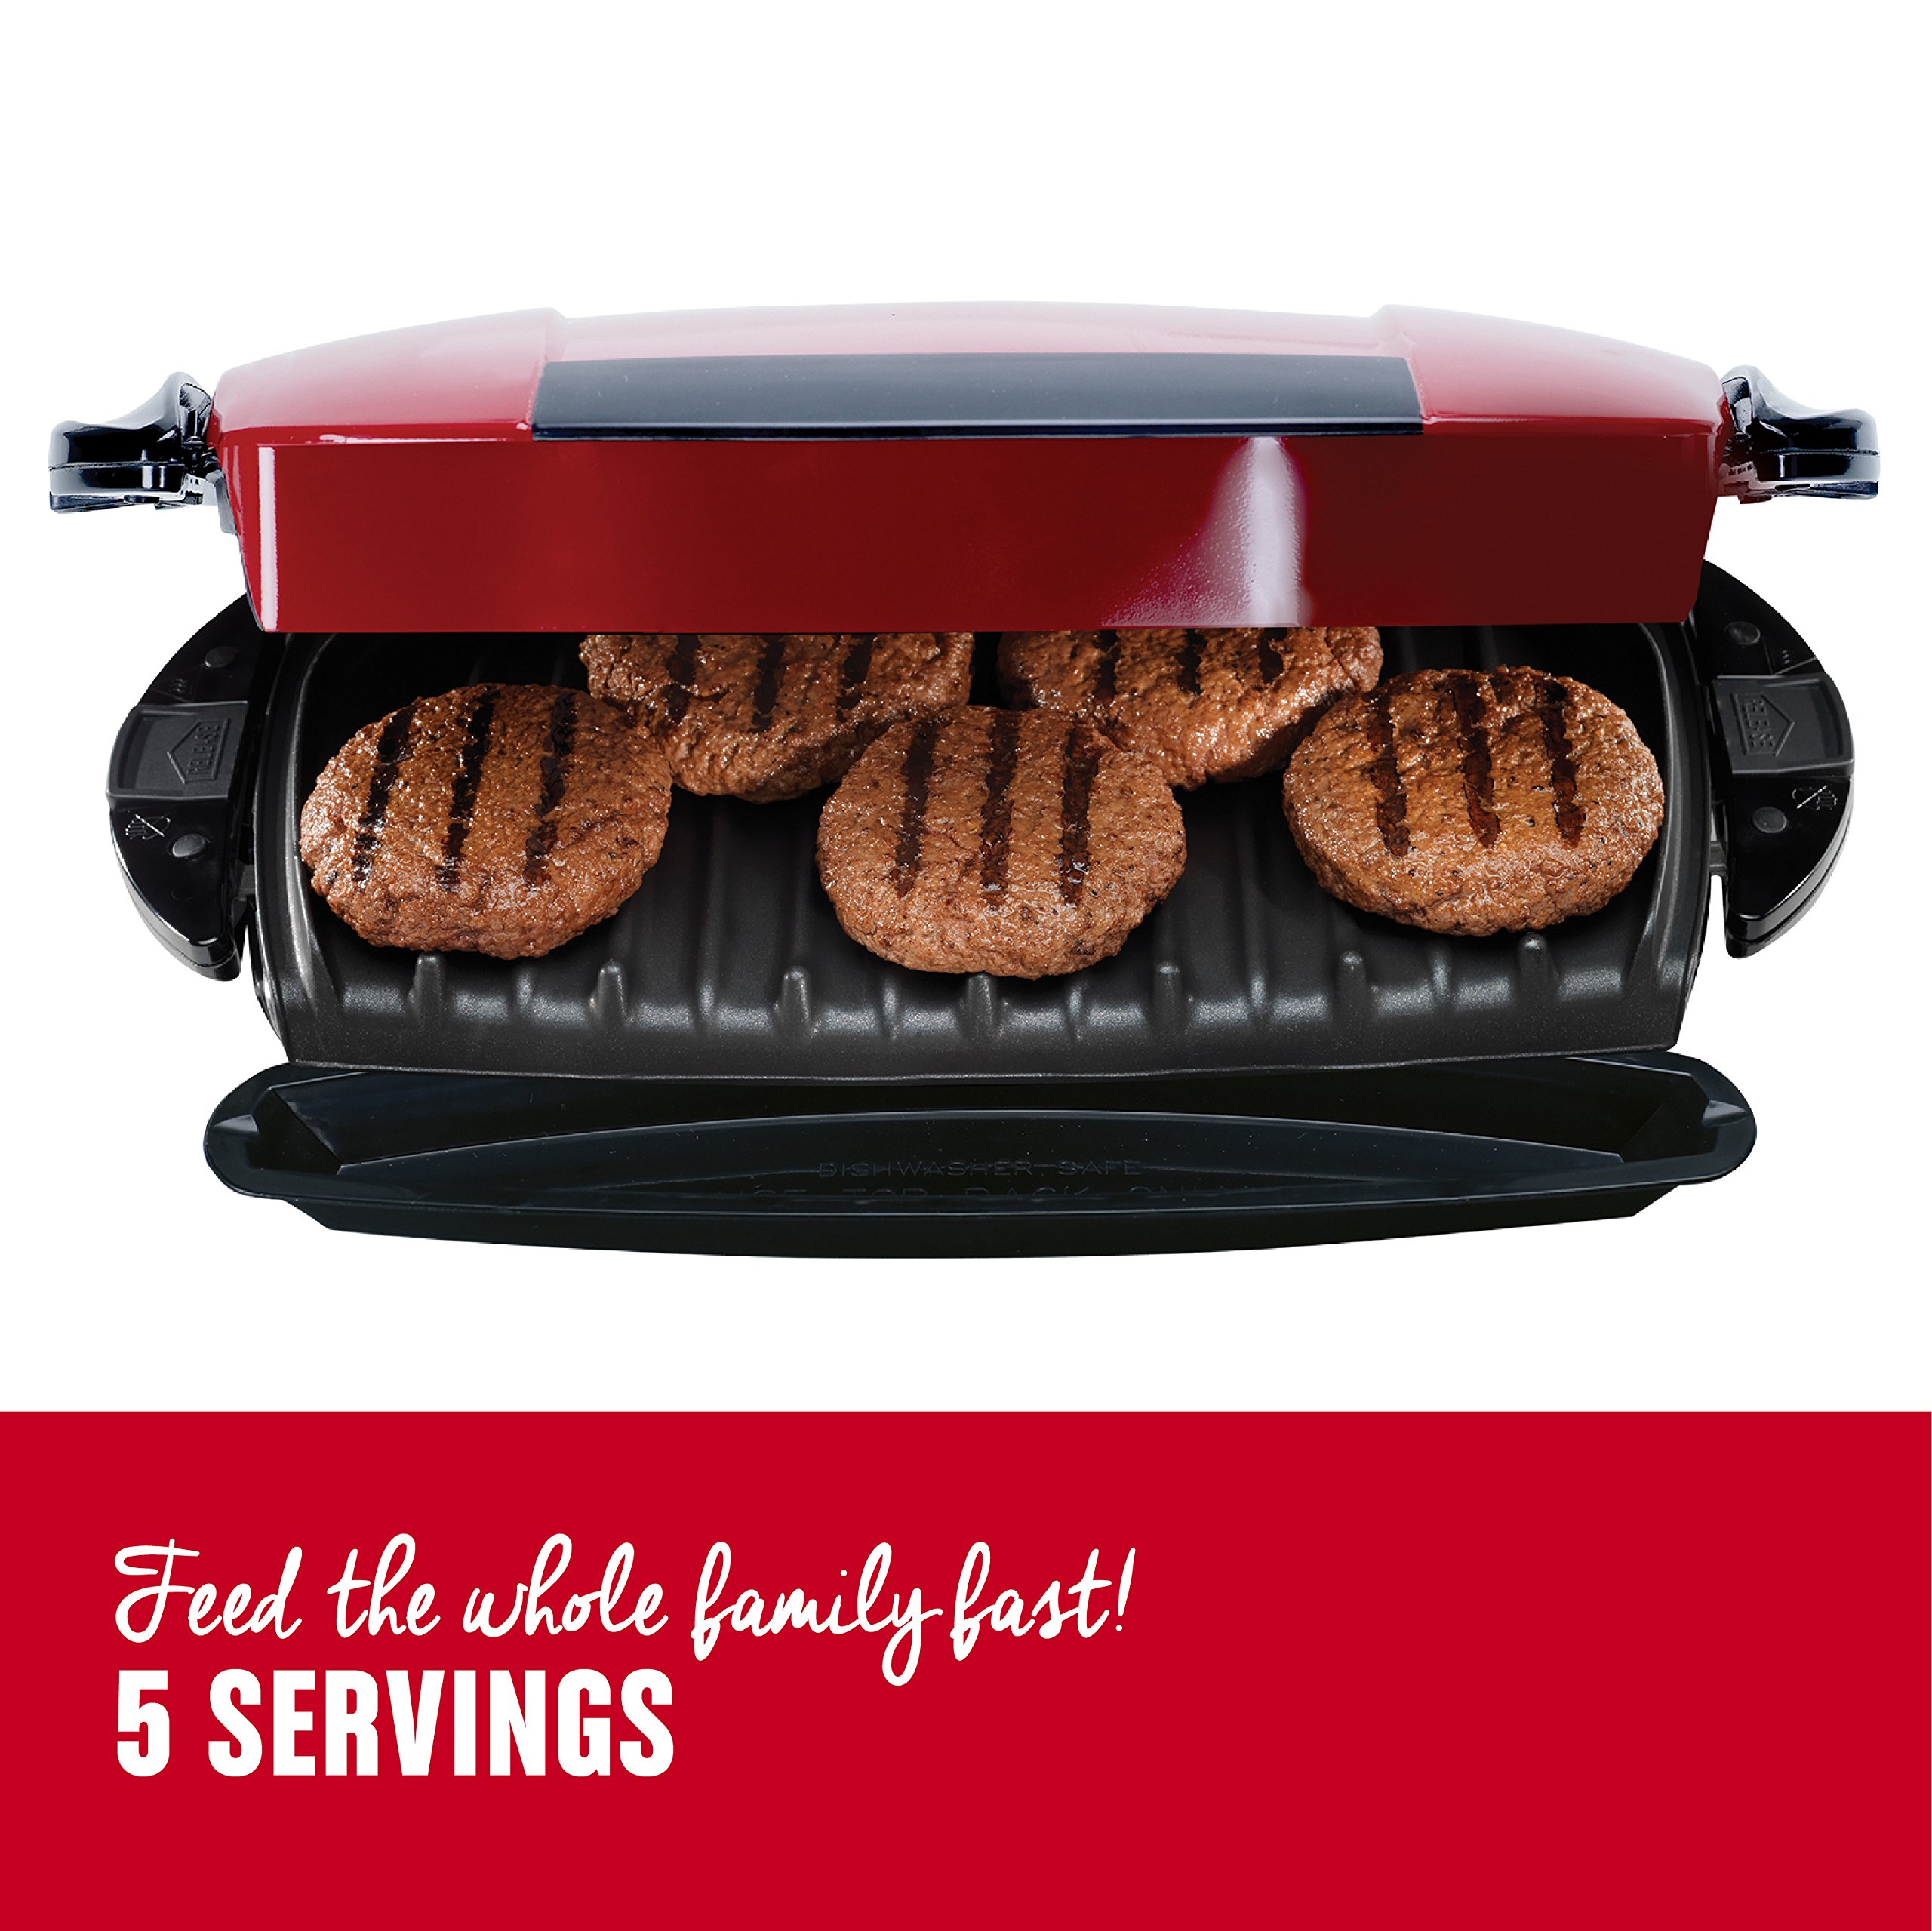 George Foreman 5-Serving Removable Plate Electric Indoor Grill and Panini Press, Red, GRP0004R by George Foreman (Image #3)